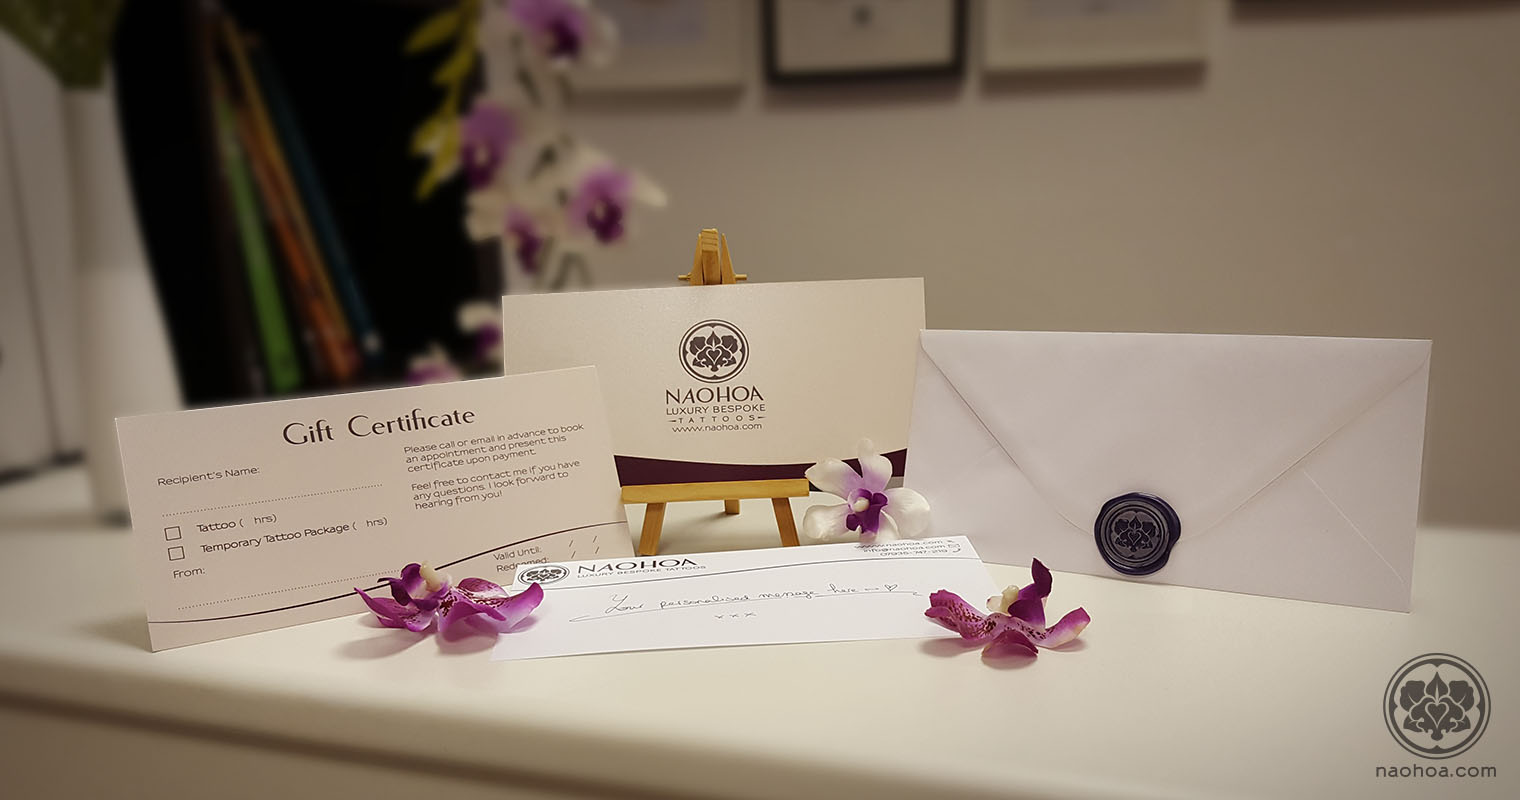 Photograph of Gift Certificates from NAOHOA Luxury Bespoke Tattoos, Cardiff. Founded by Naomi Hoang.